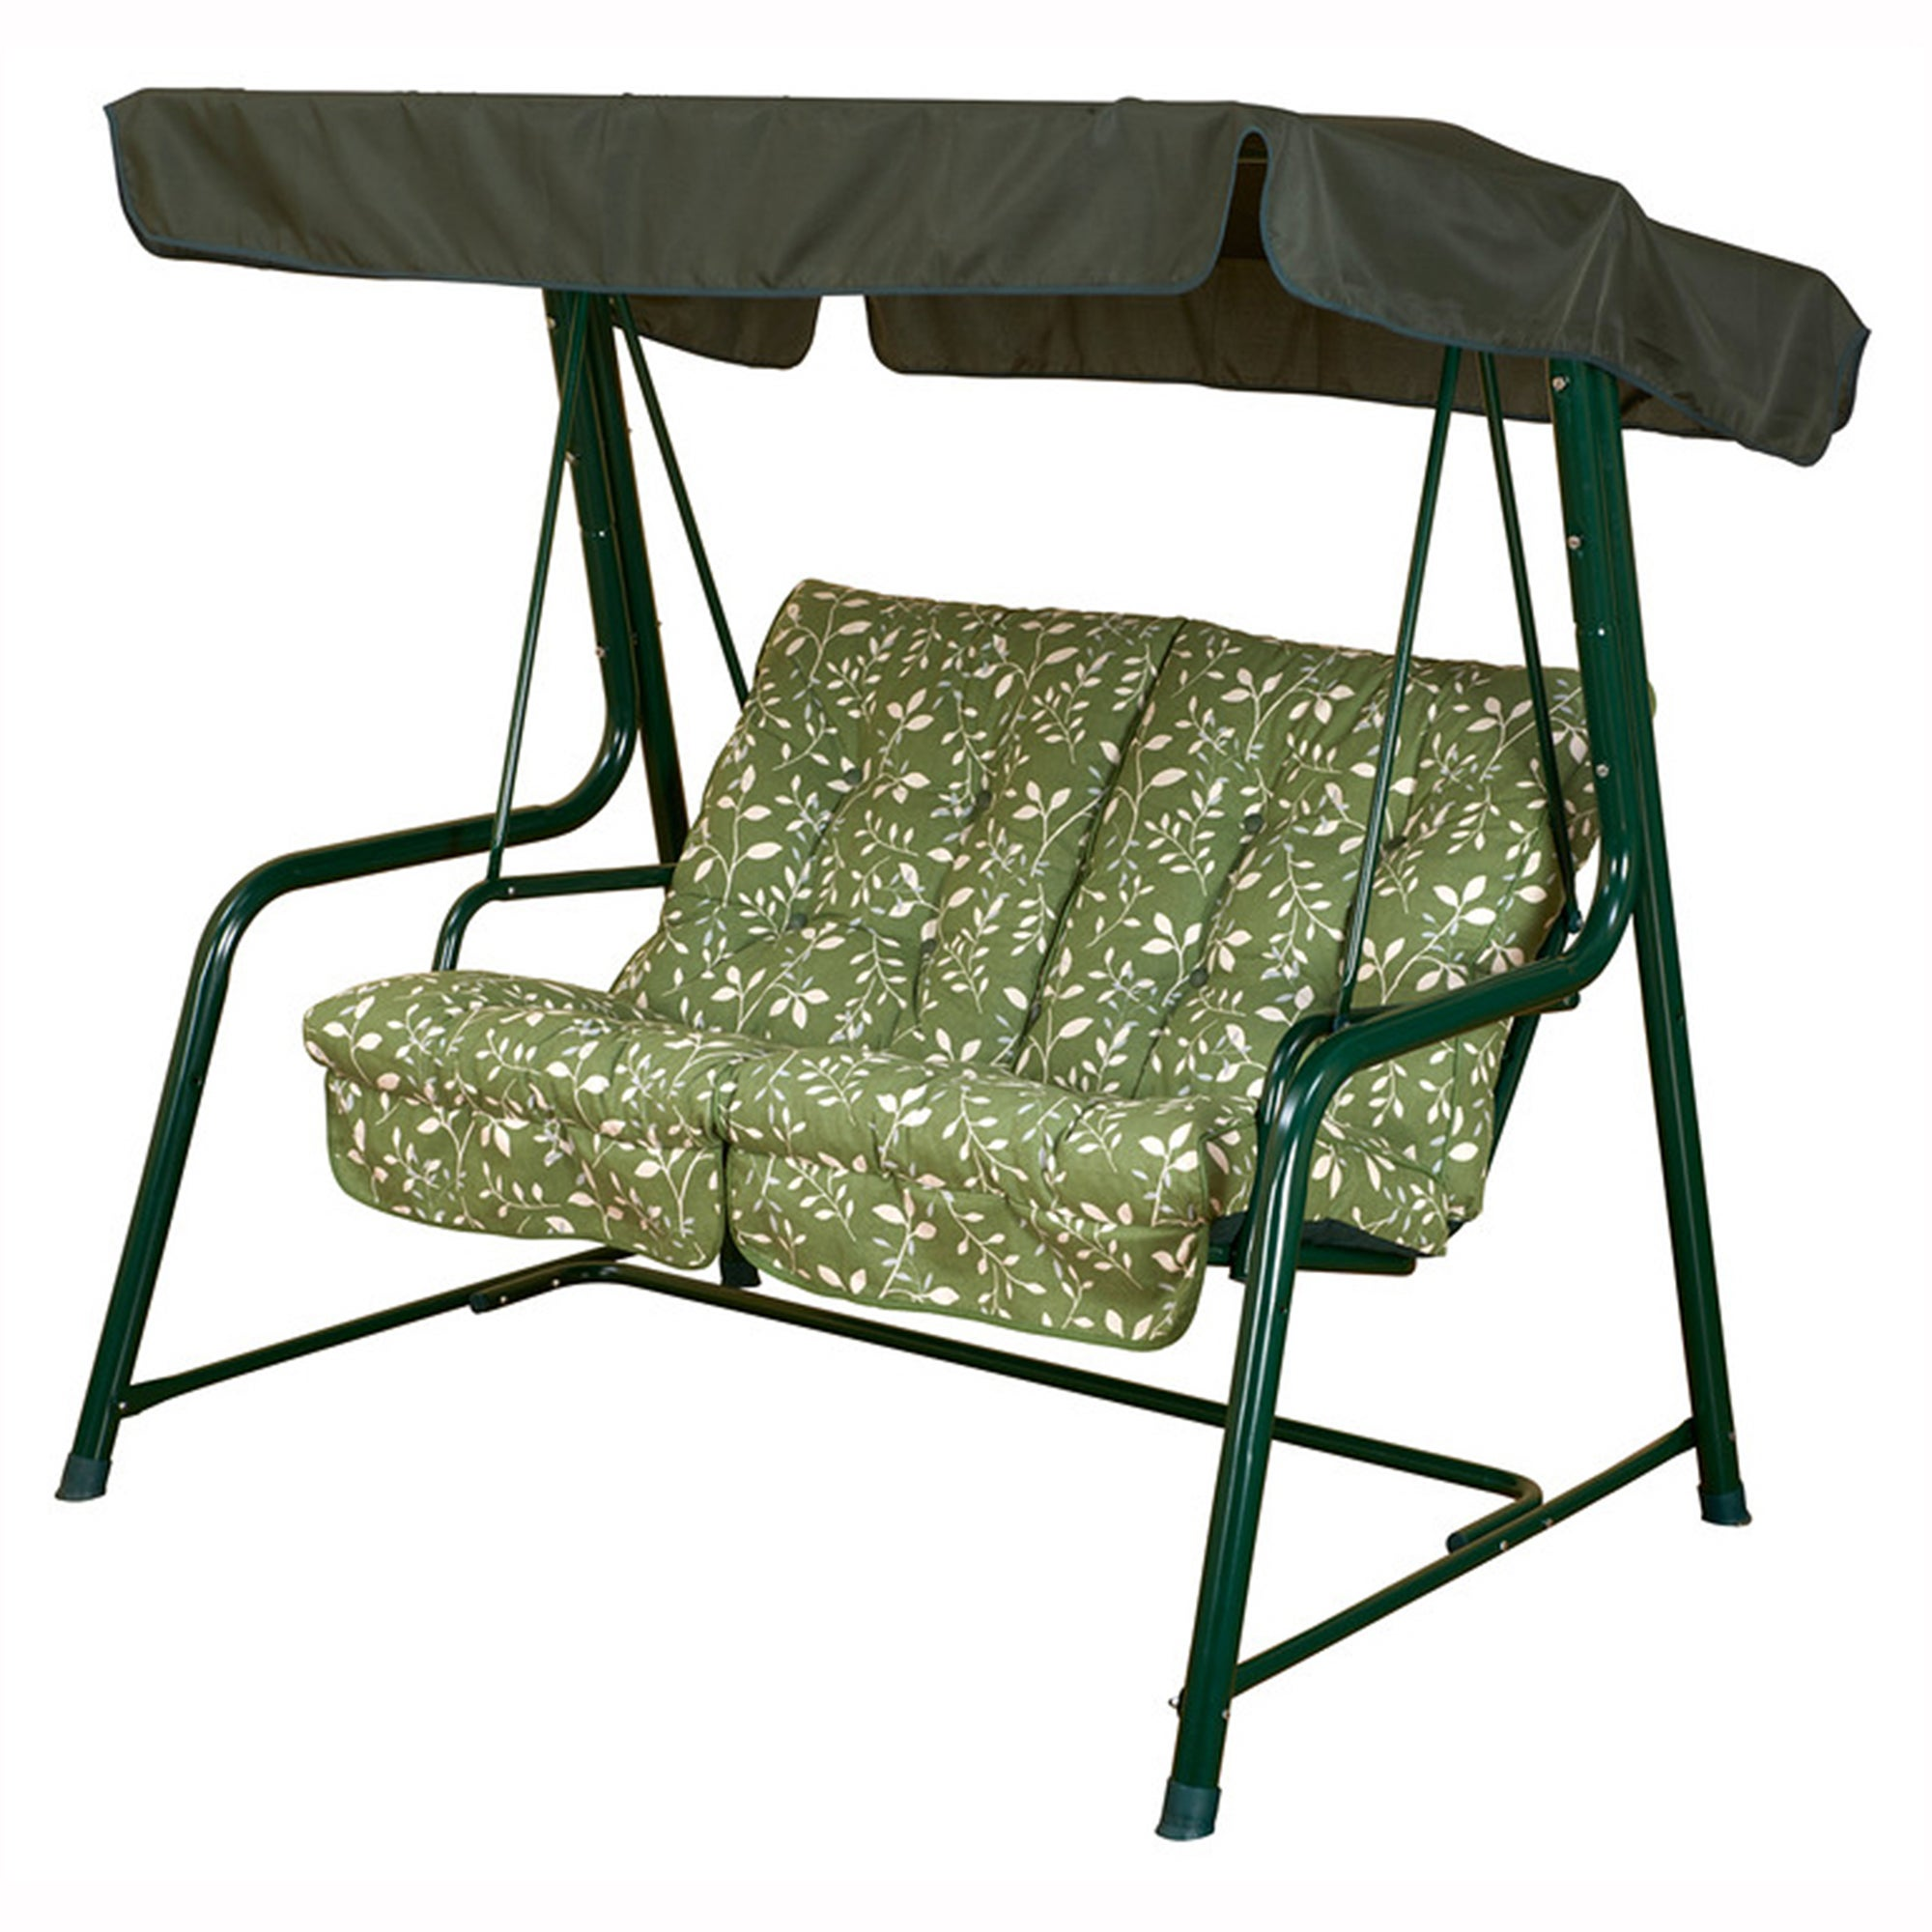 Glendale Country Green Vienna 2 Seater Swing Seat Green